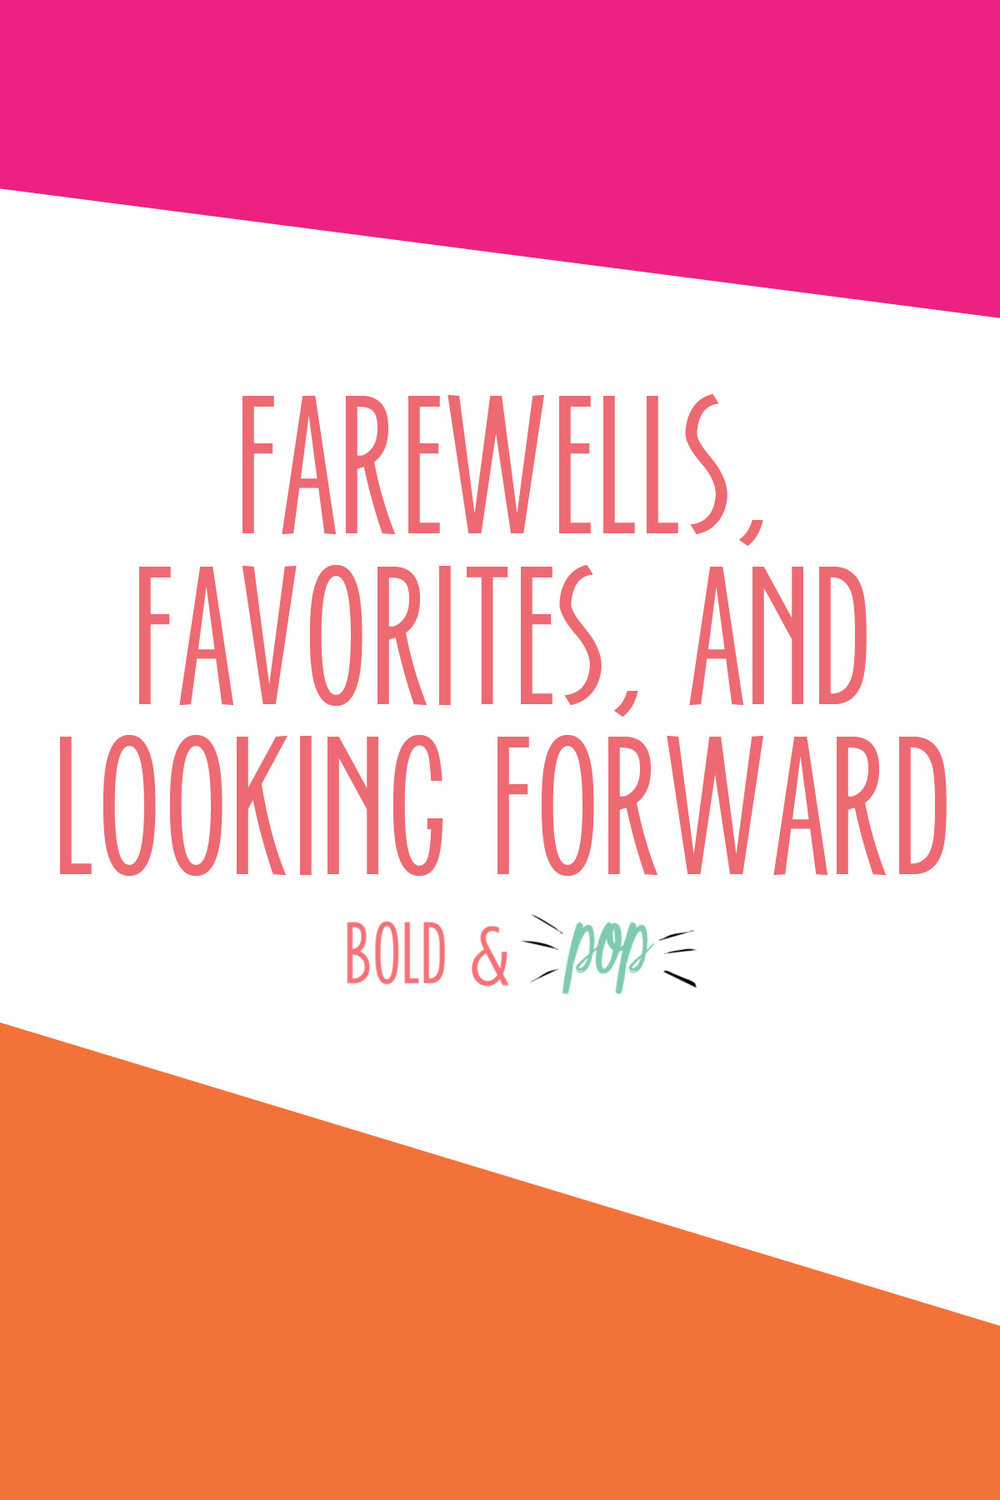 Farewells, Favorites, and Looking Forward : Bold & Pop Highlights 5 favorite social media, branding and web design projects of the year.